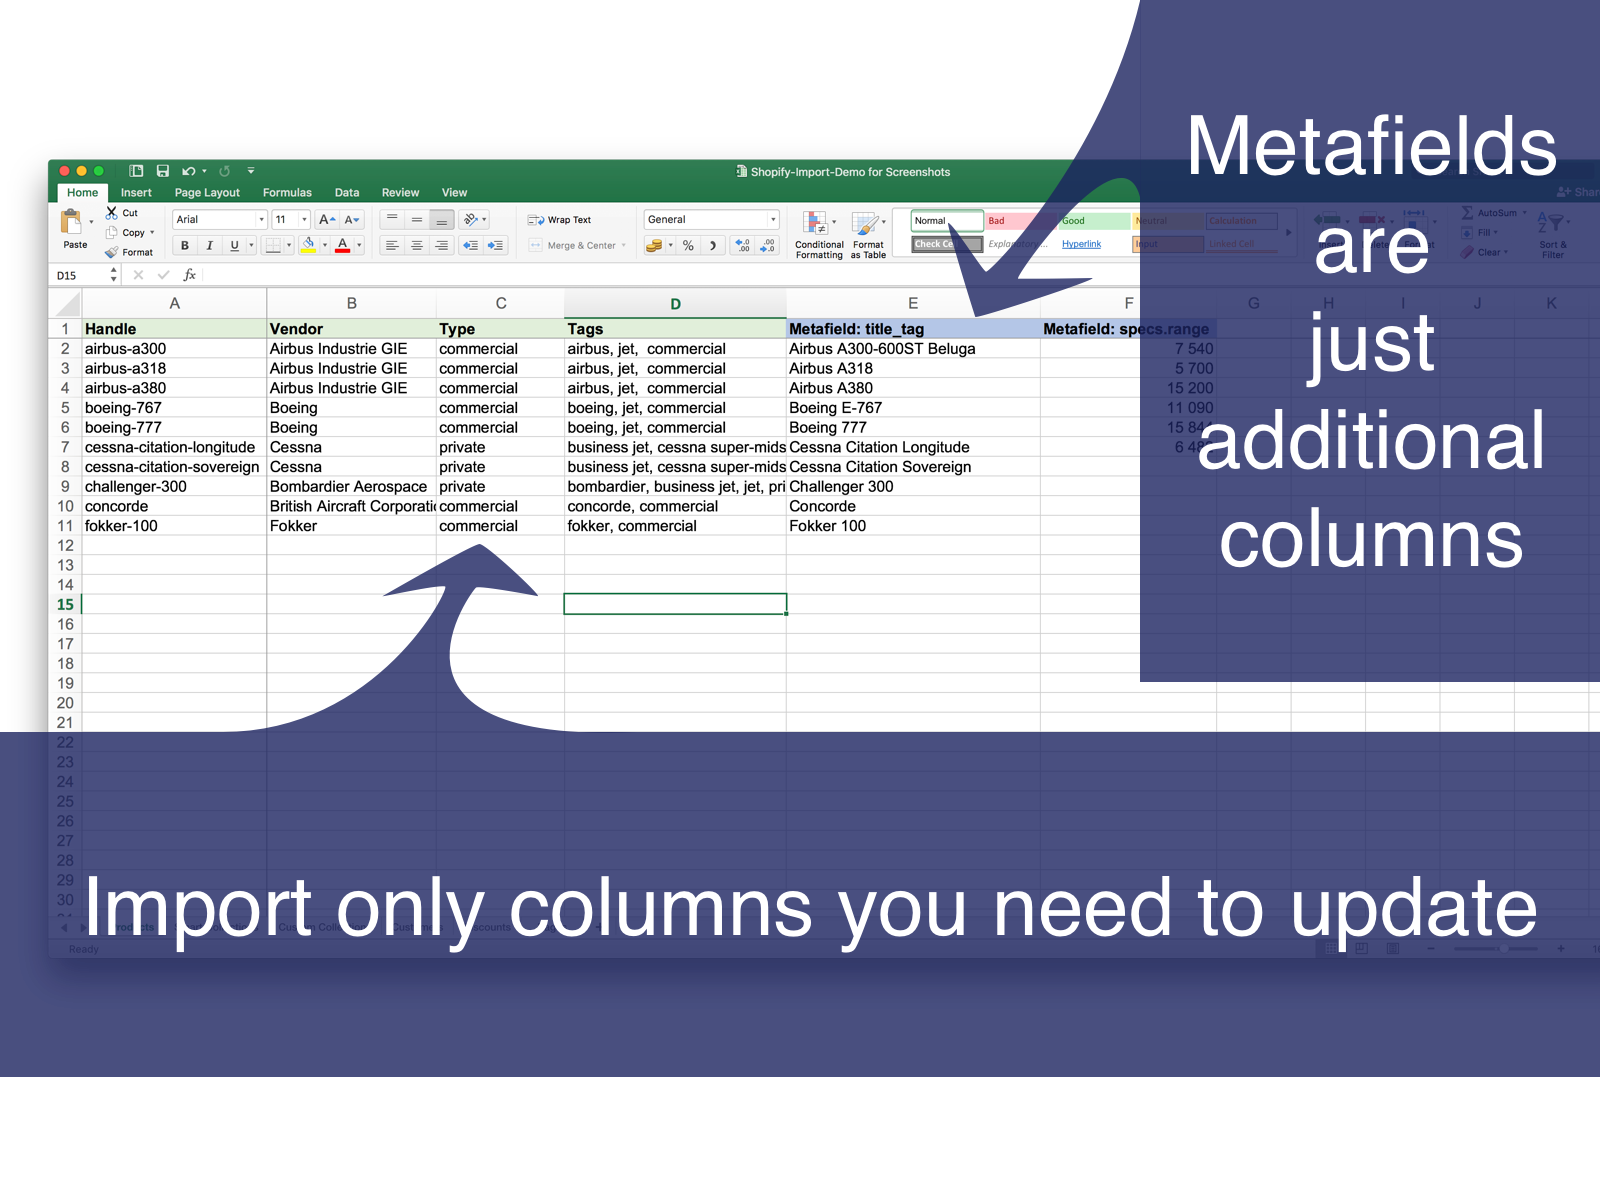 Shopify Metafields are organized as additional columns